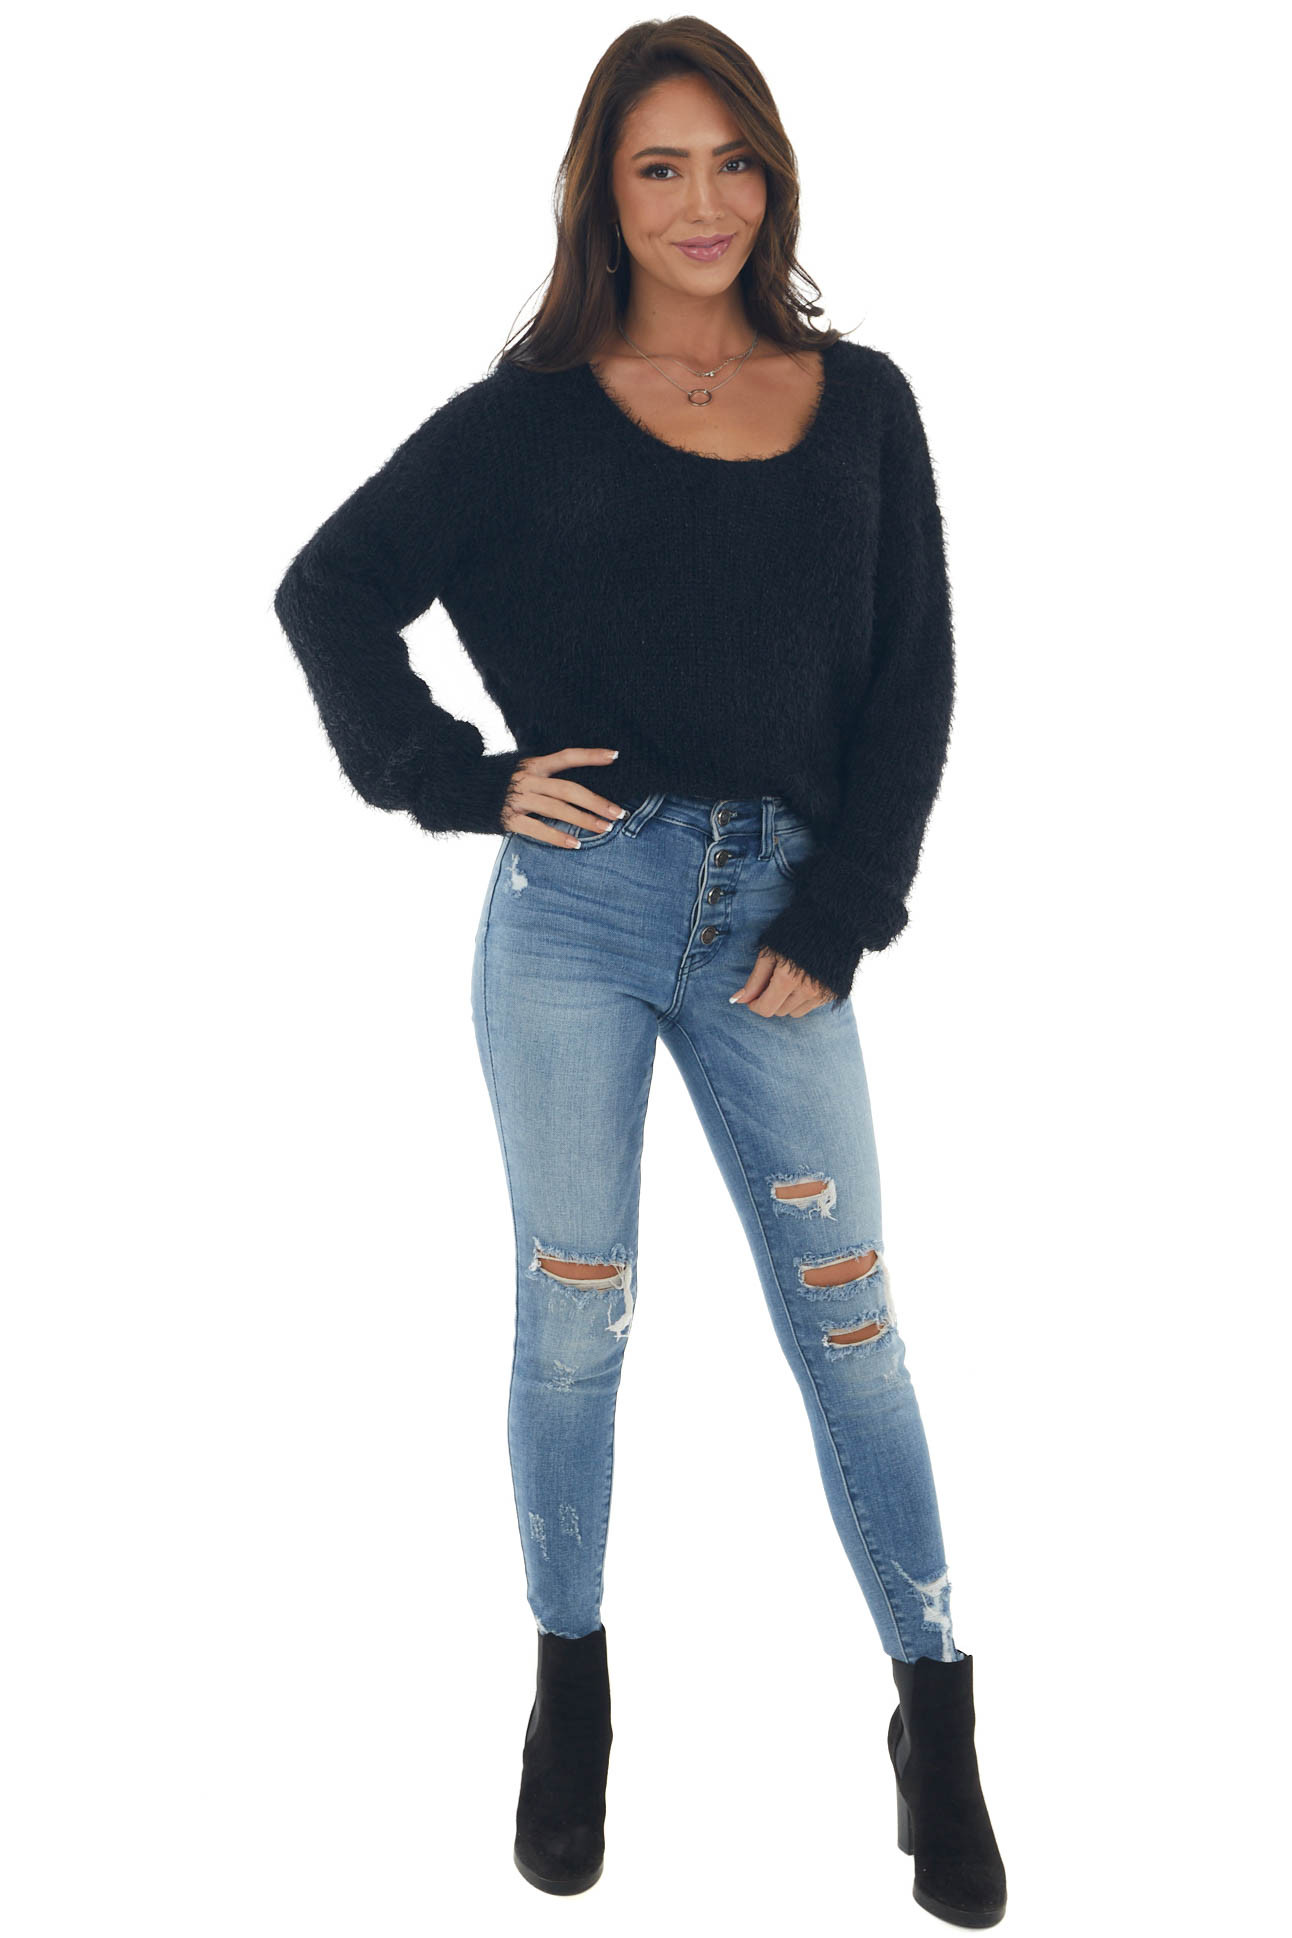 Black Fuzzy Soft Sweater with Silver Threading